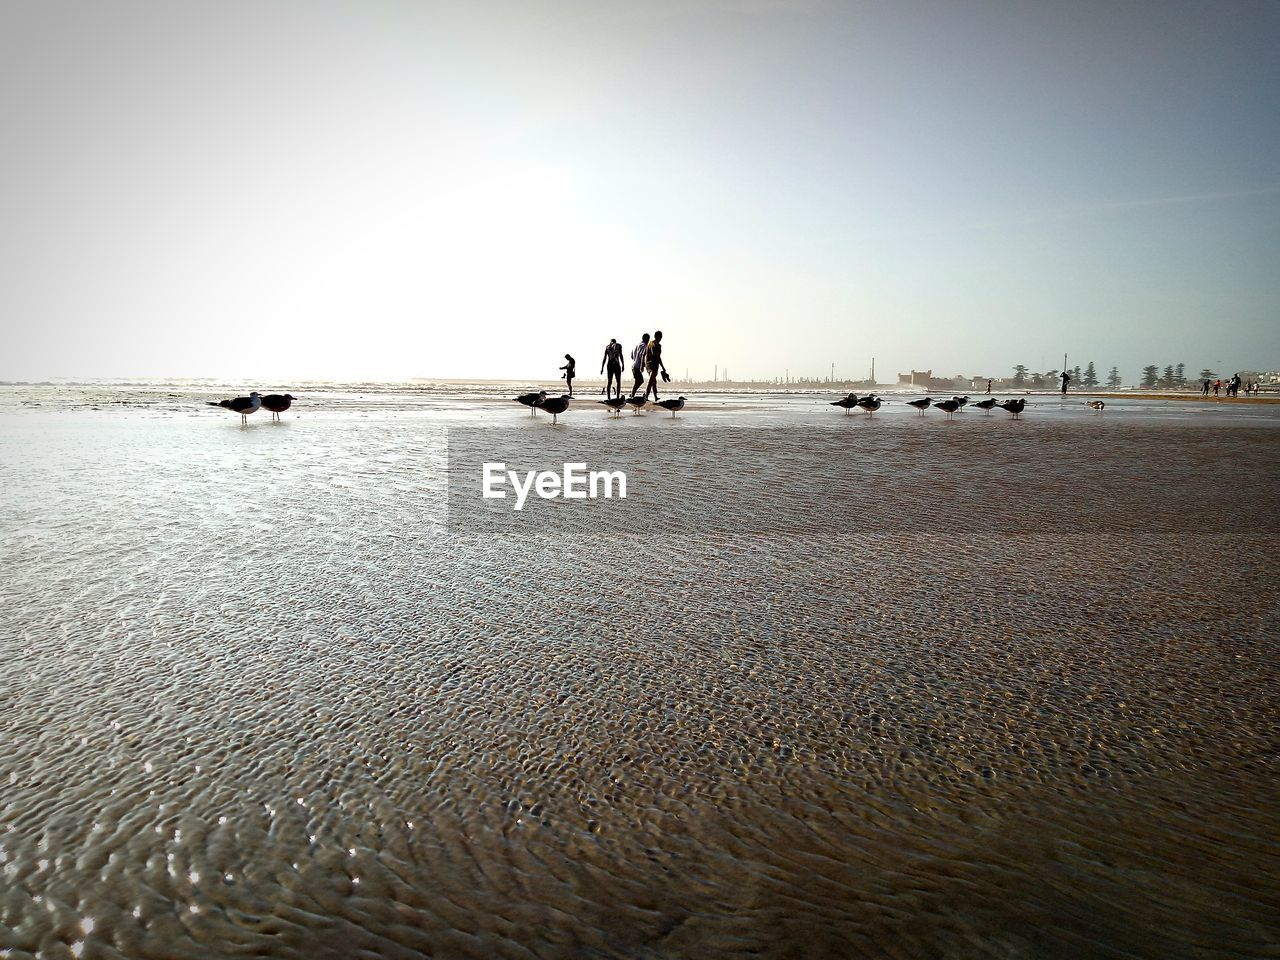 water, sea, sky, beach, beauty in nature, nature, real people, land, day, scenics - nature, clear sky, group of people, horizon, men, nautical vessel, transportation, lifestyles, sand, leisure activity, outdoors, horizon over water